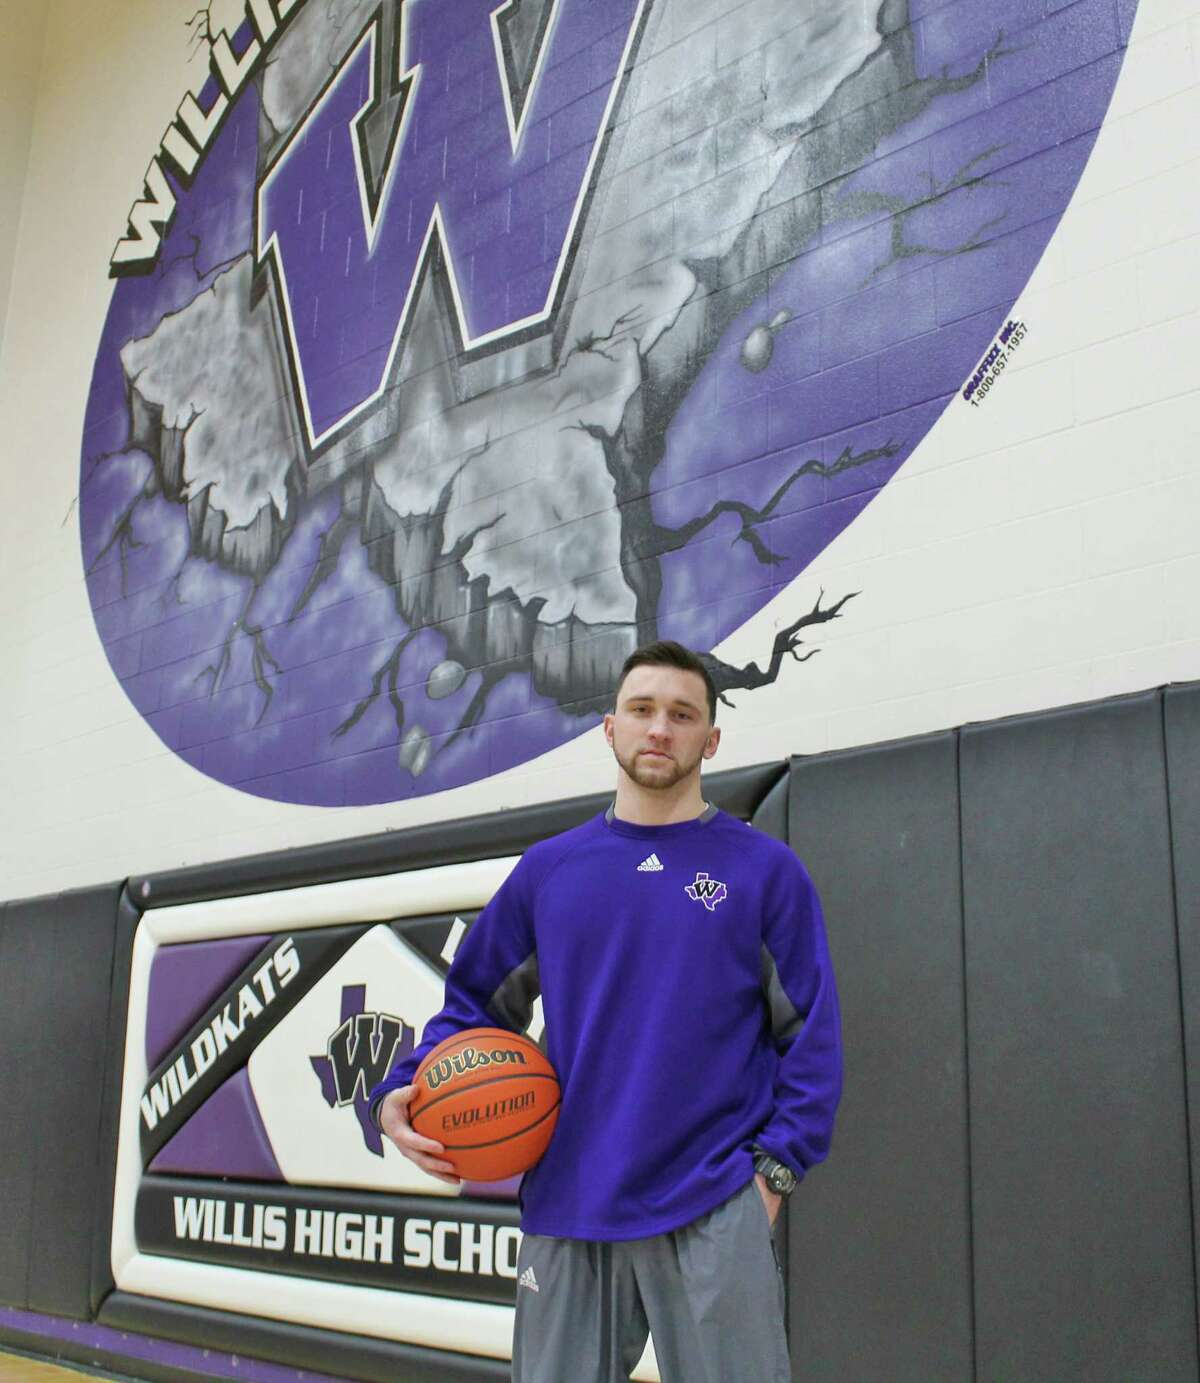 Willis varsity assistant Payne Andrus was The Courier's Player of the Year as a high school senior in 2013. Now he is preparing to coach the Wildkats in the Class 5A playoffs in his first year with the team.